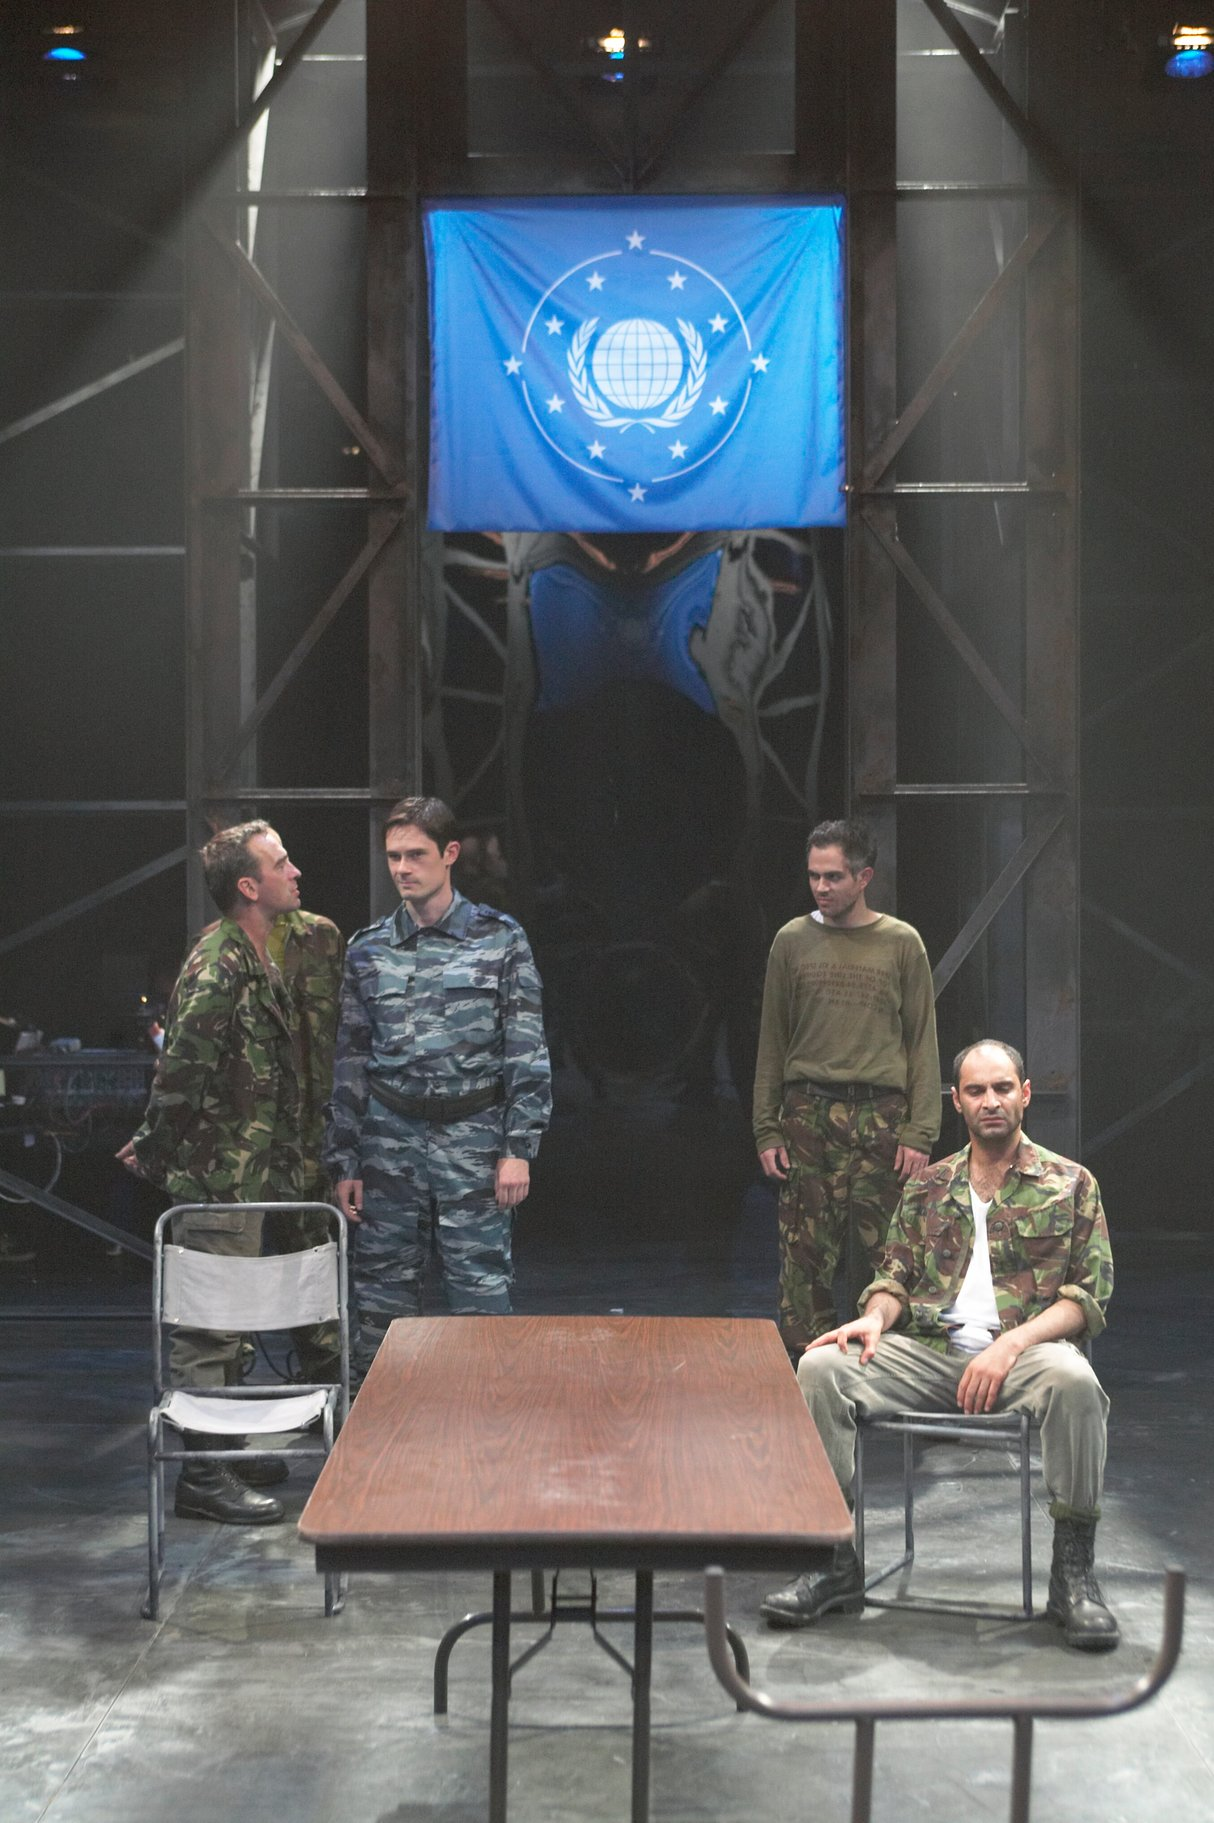 Cassius, Brutus, Cinna and Octavius meet at a large table with the symbol of the republic above them on a blue flag. They are all dressed in combat clothing in the 2004 production of Julius Caesar.